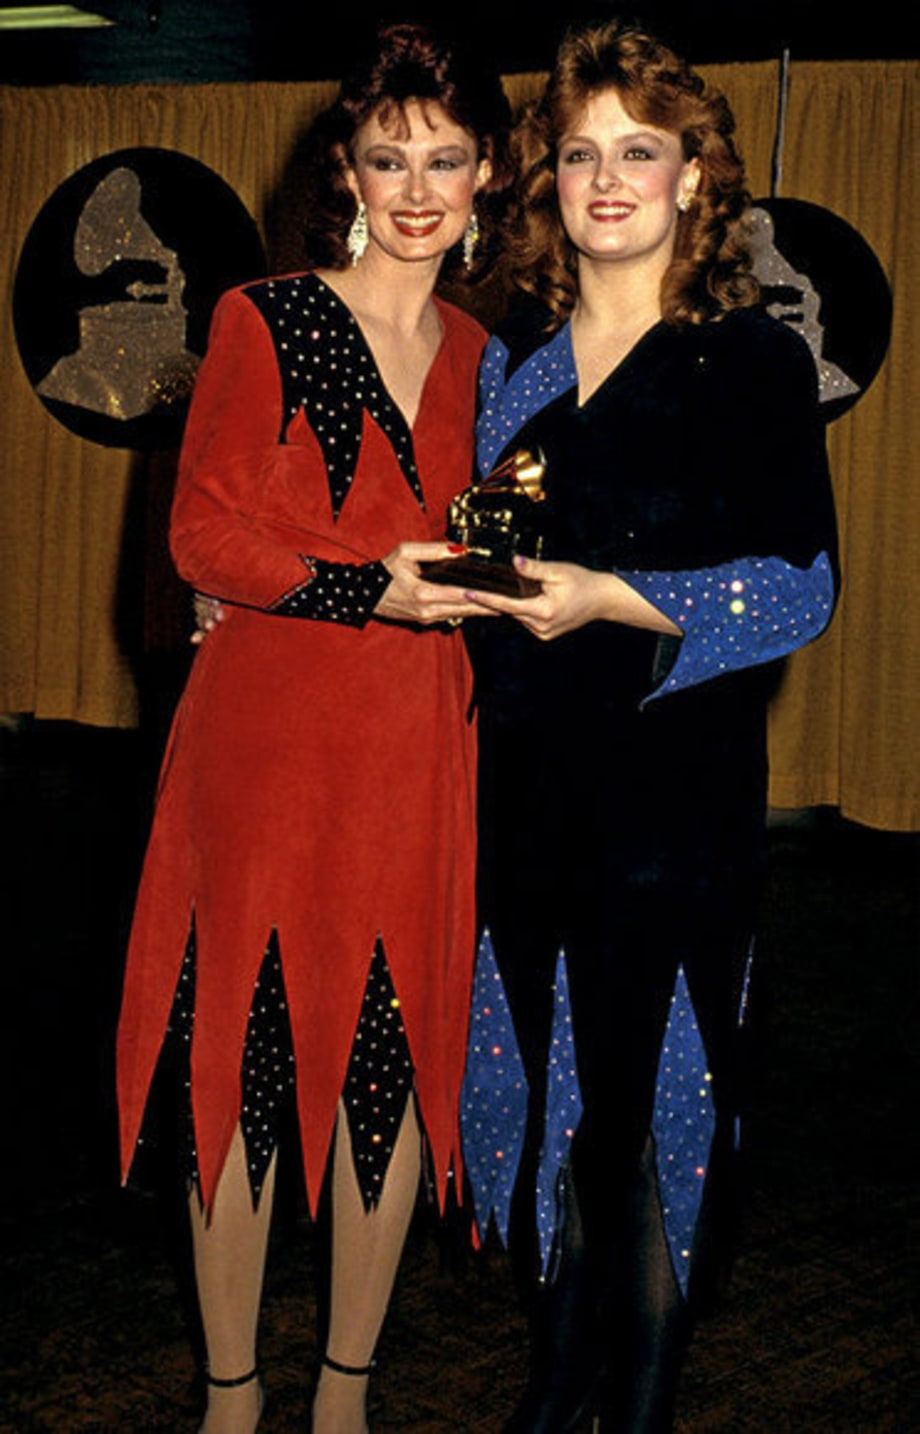 1985 The Wildest Looks From The Grammys Red Carpet